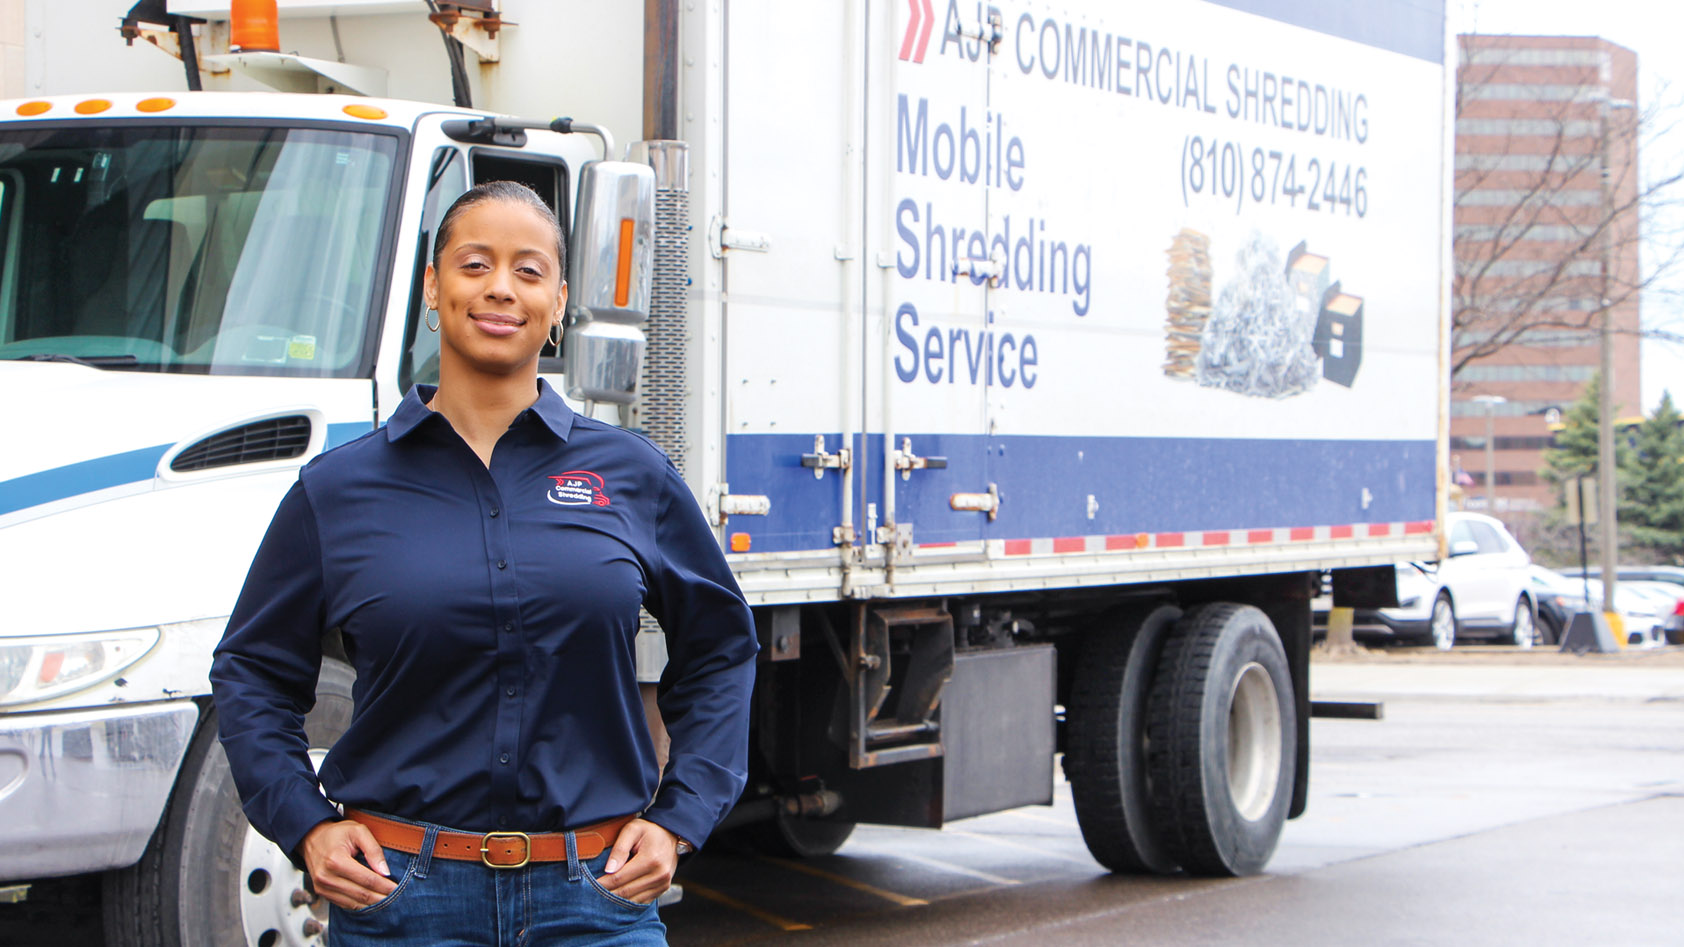 April January, owner of AJP Commercial Shredding, Genesee County, MI